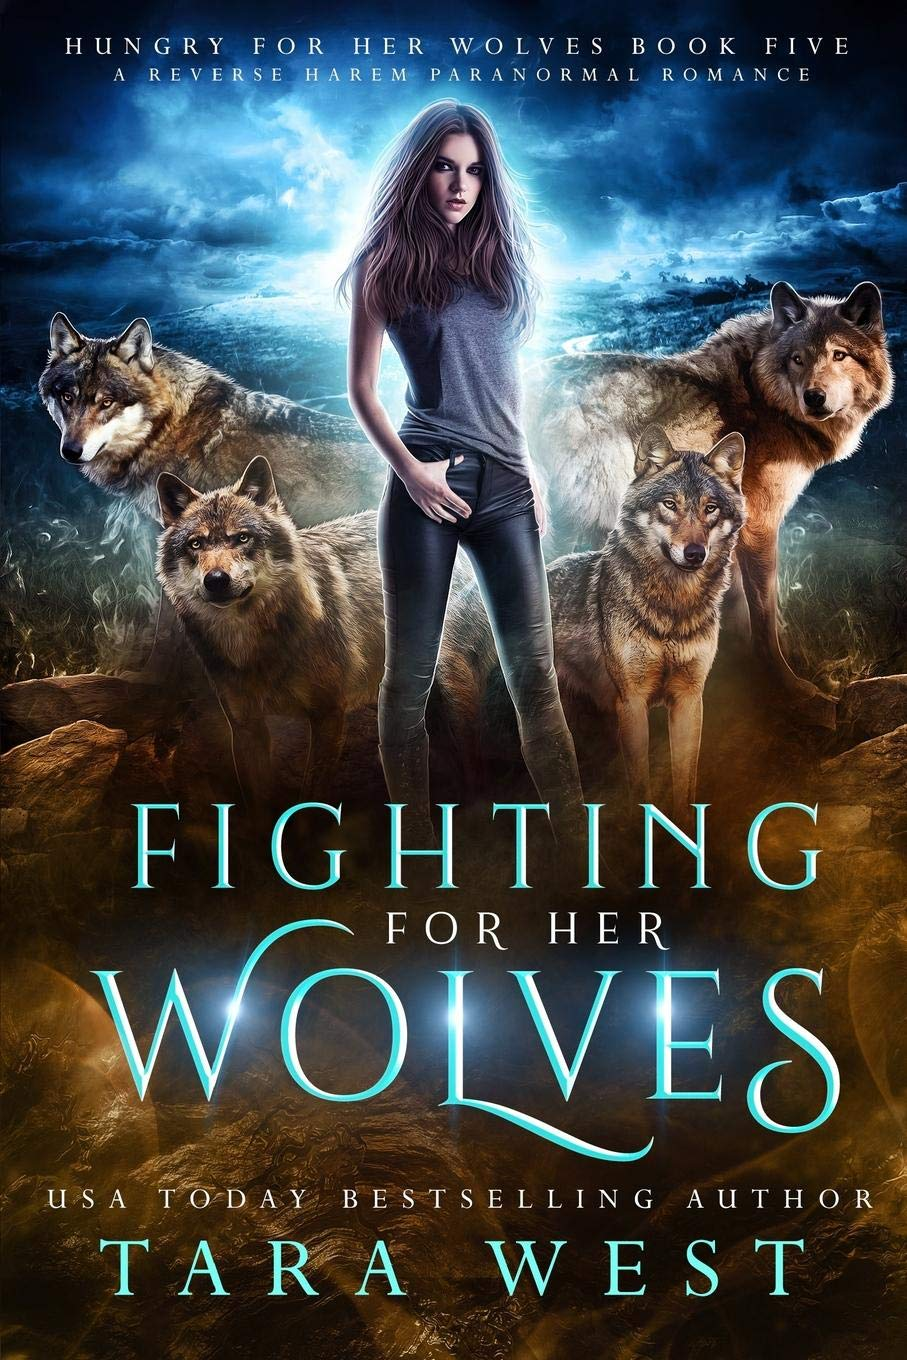 Amazon Com Fighting For Her Wolves A Reverse Harem Paranormal Romance Hungry For Her Wolves 9781081773175 West Tara Books